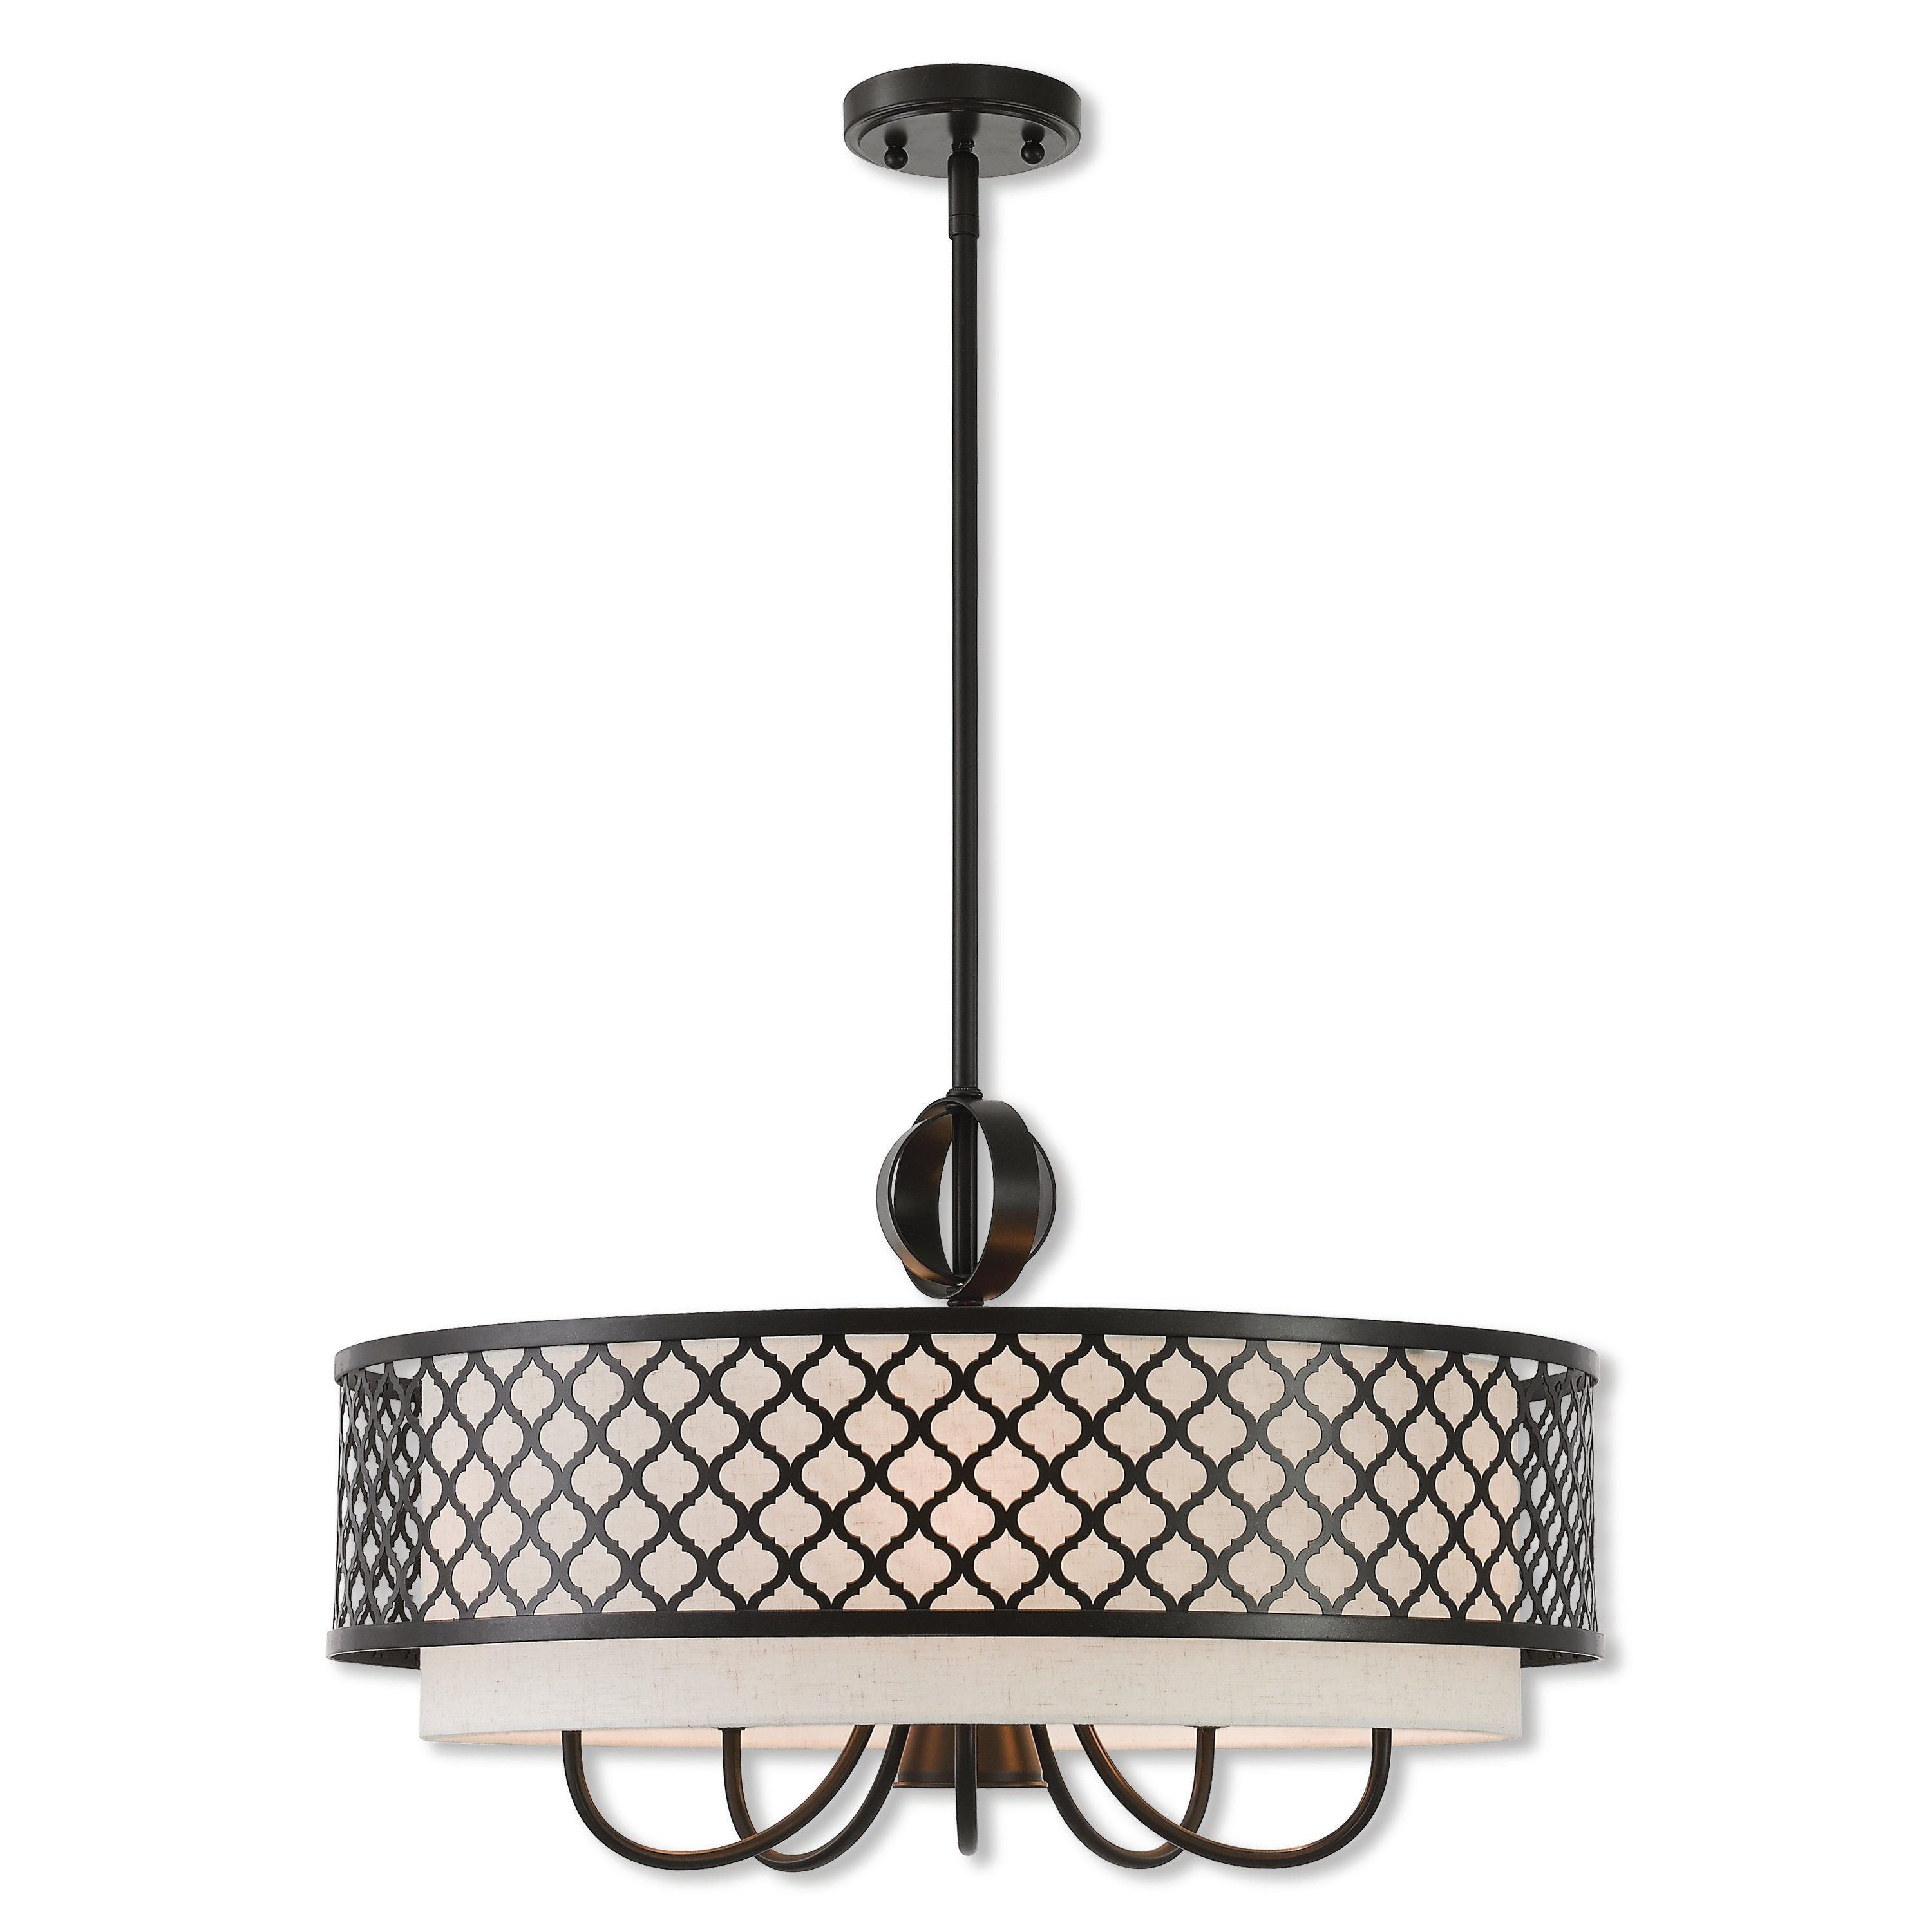 Tymvou 6 Light Drum Chandelier Regarding Wadlington 6 Light Single Cylinder Pendants (View 23 of 30)